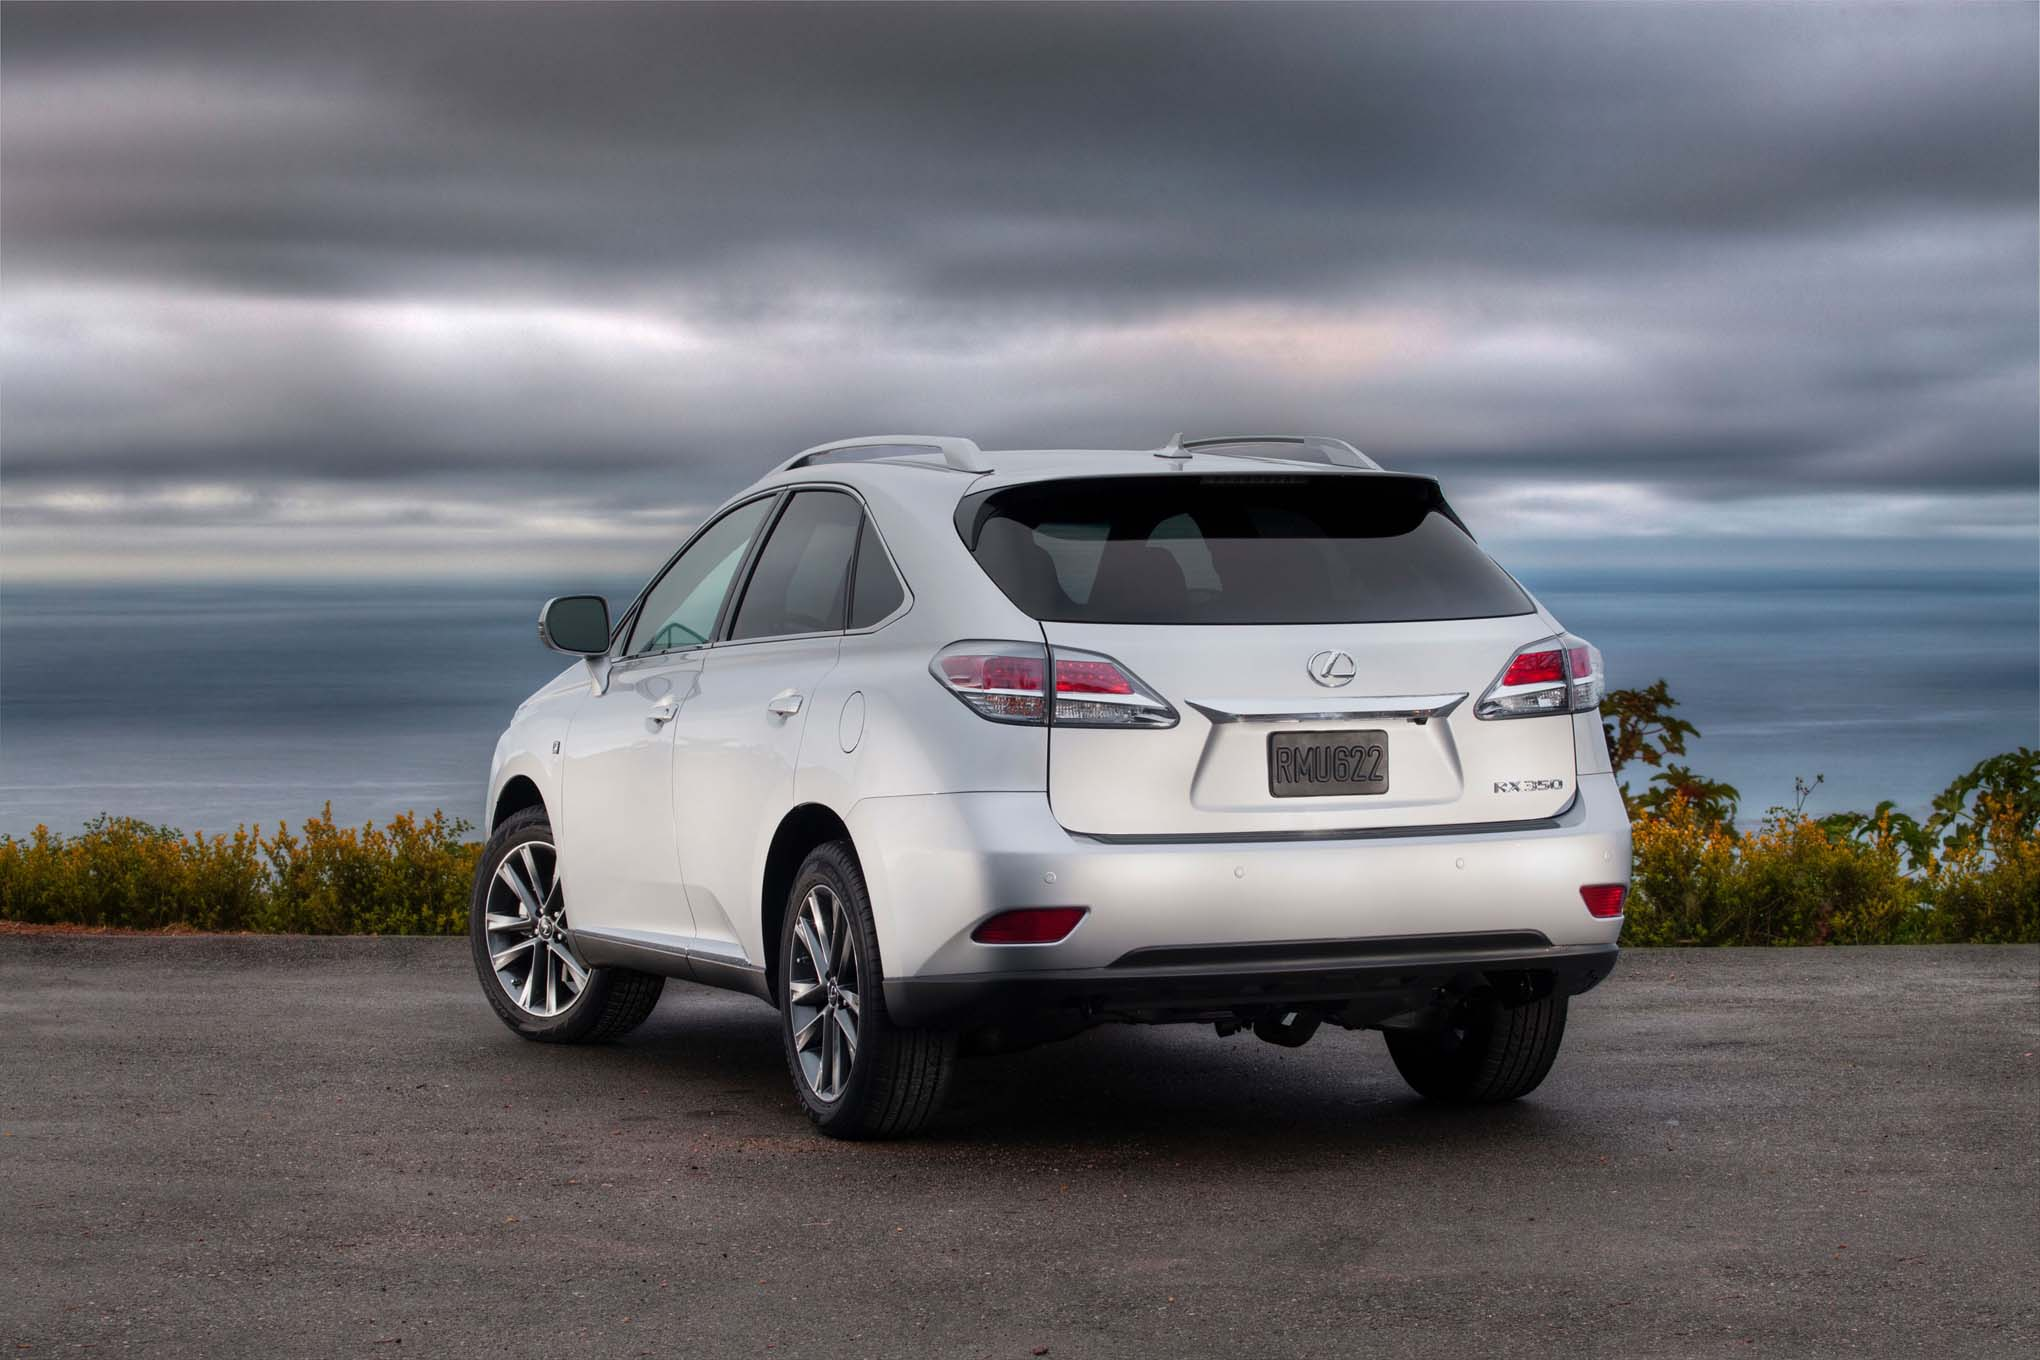 base lexus photos wheel photo rx features front drive suv reviews price